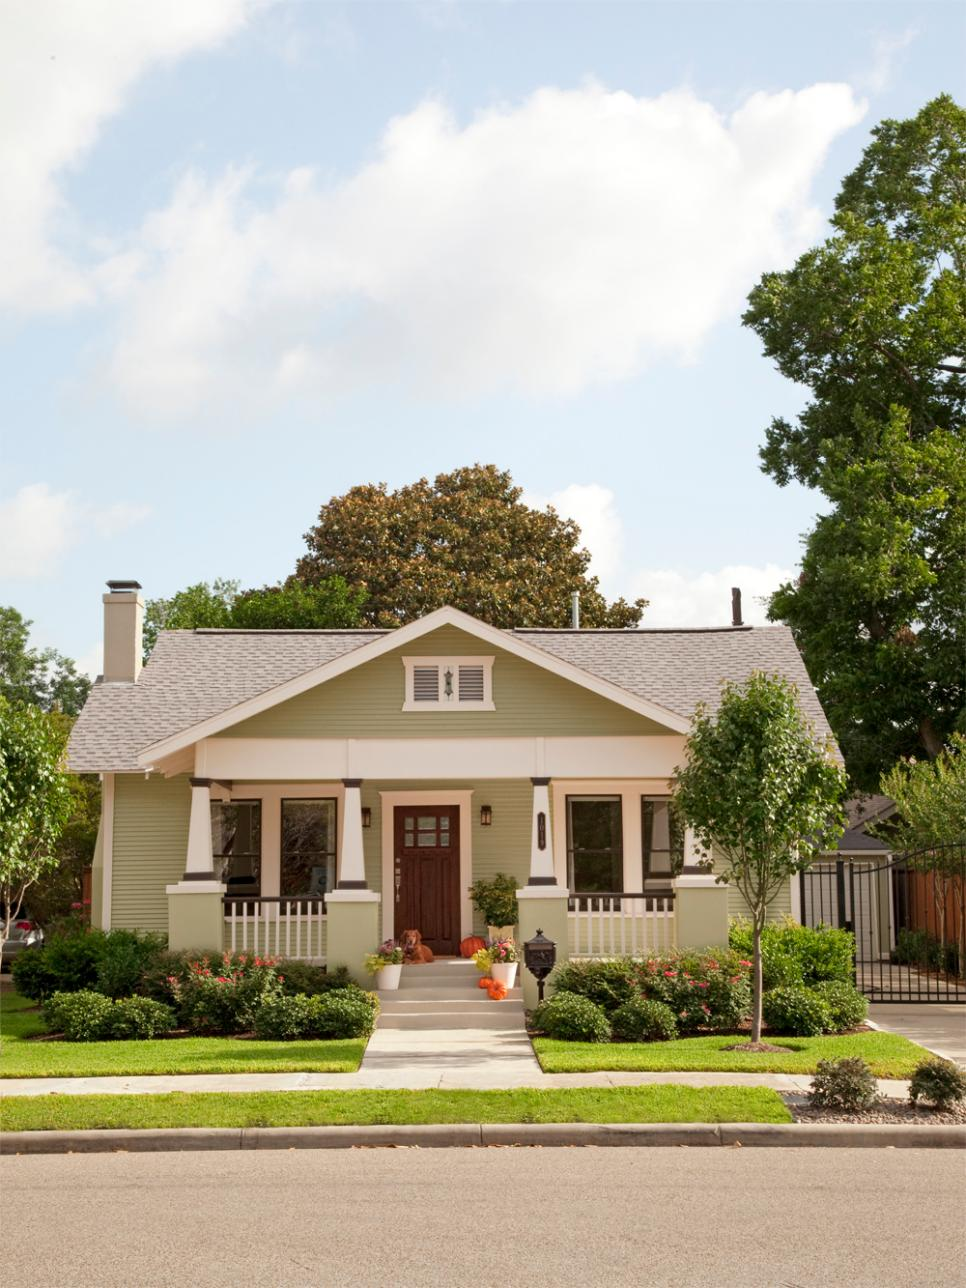 Boost your curb appeal with a bungalow look hgtv for Craftsman landscape design ideas